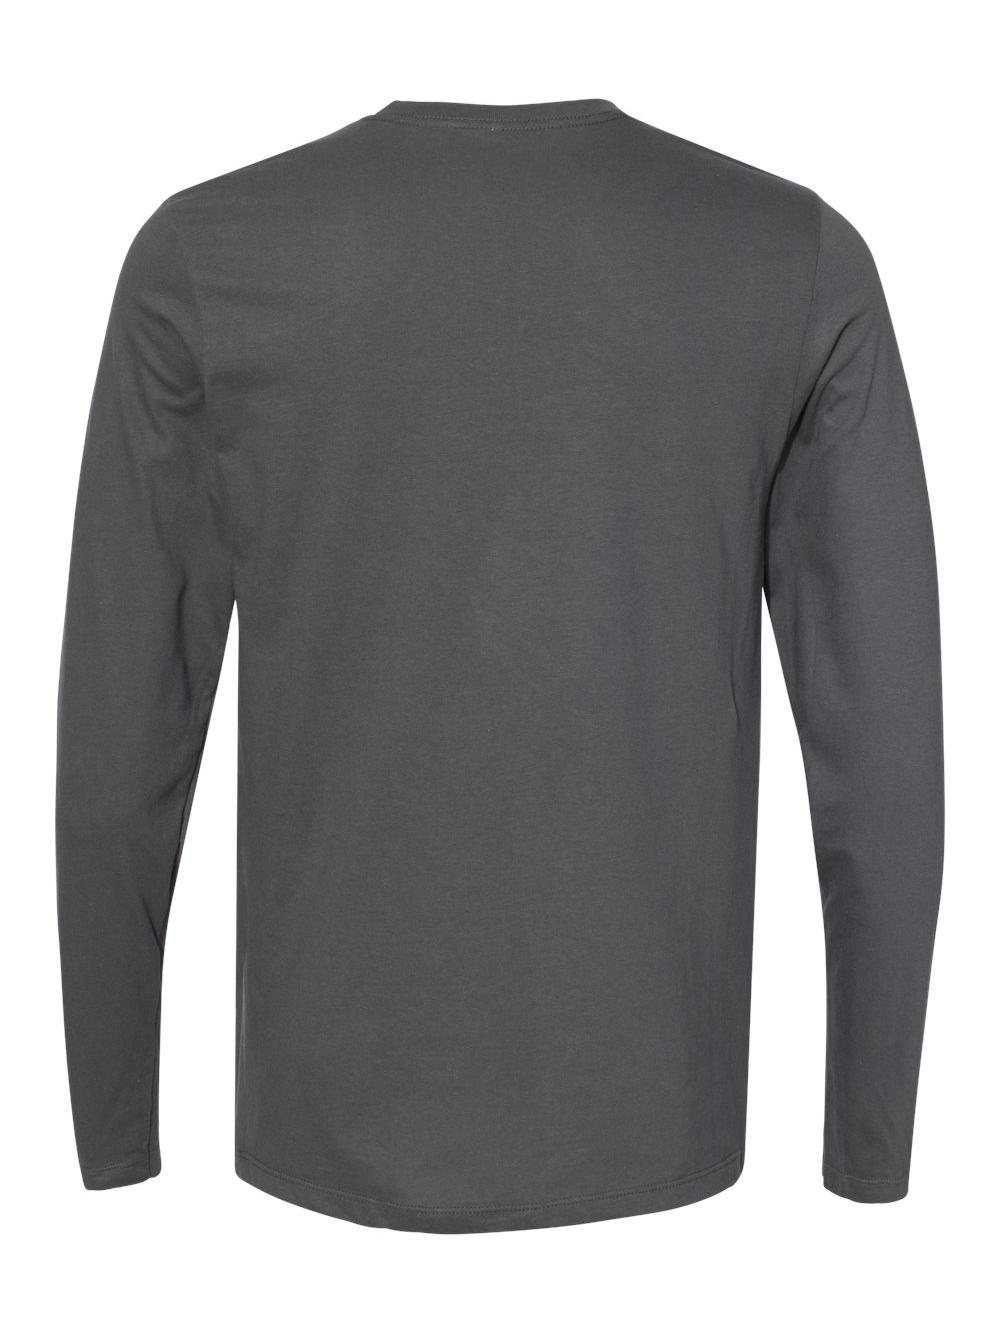 ALSTYLE-Ultimate-Long-Sleeve-T-Shirt-5304 thumbnail 8